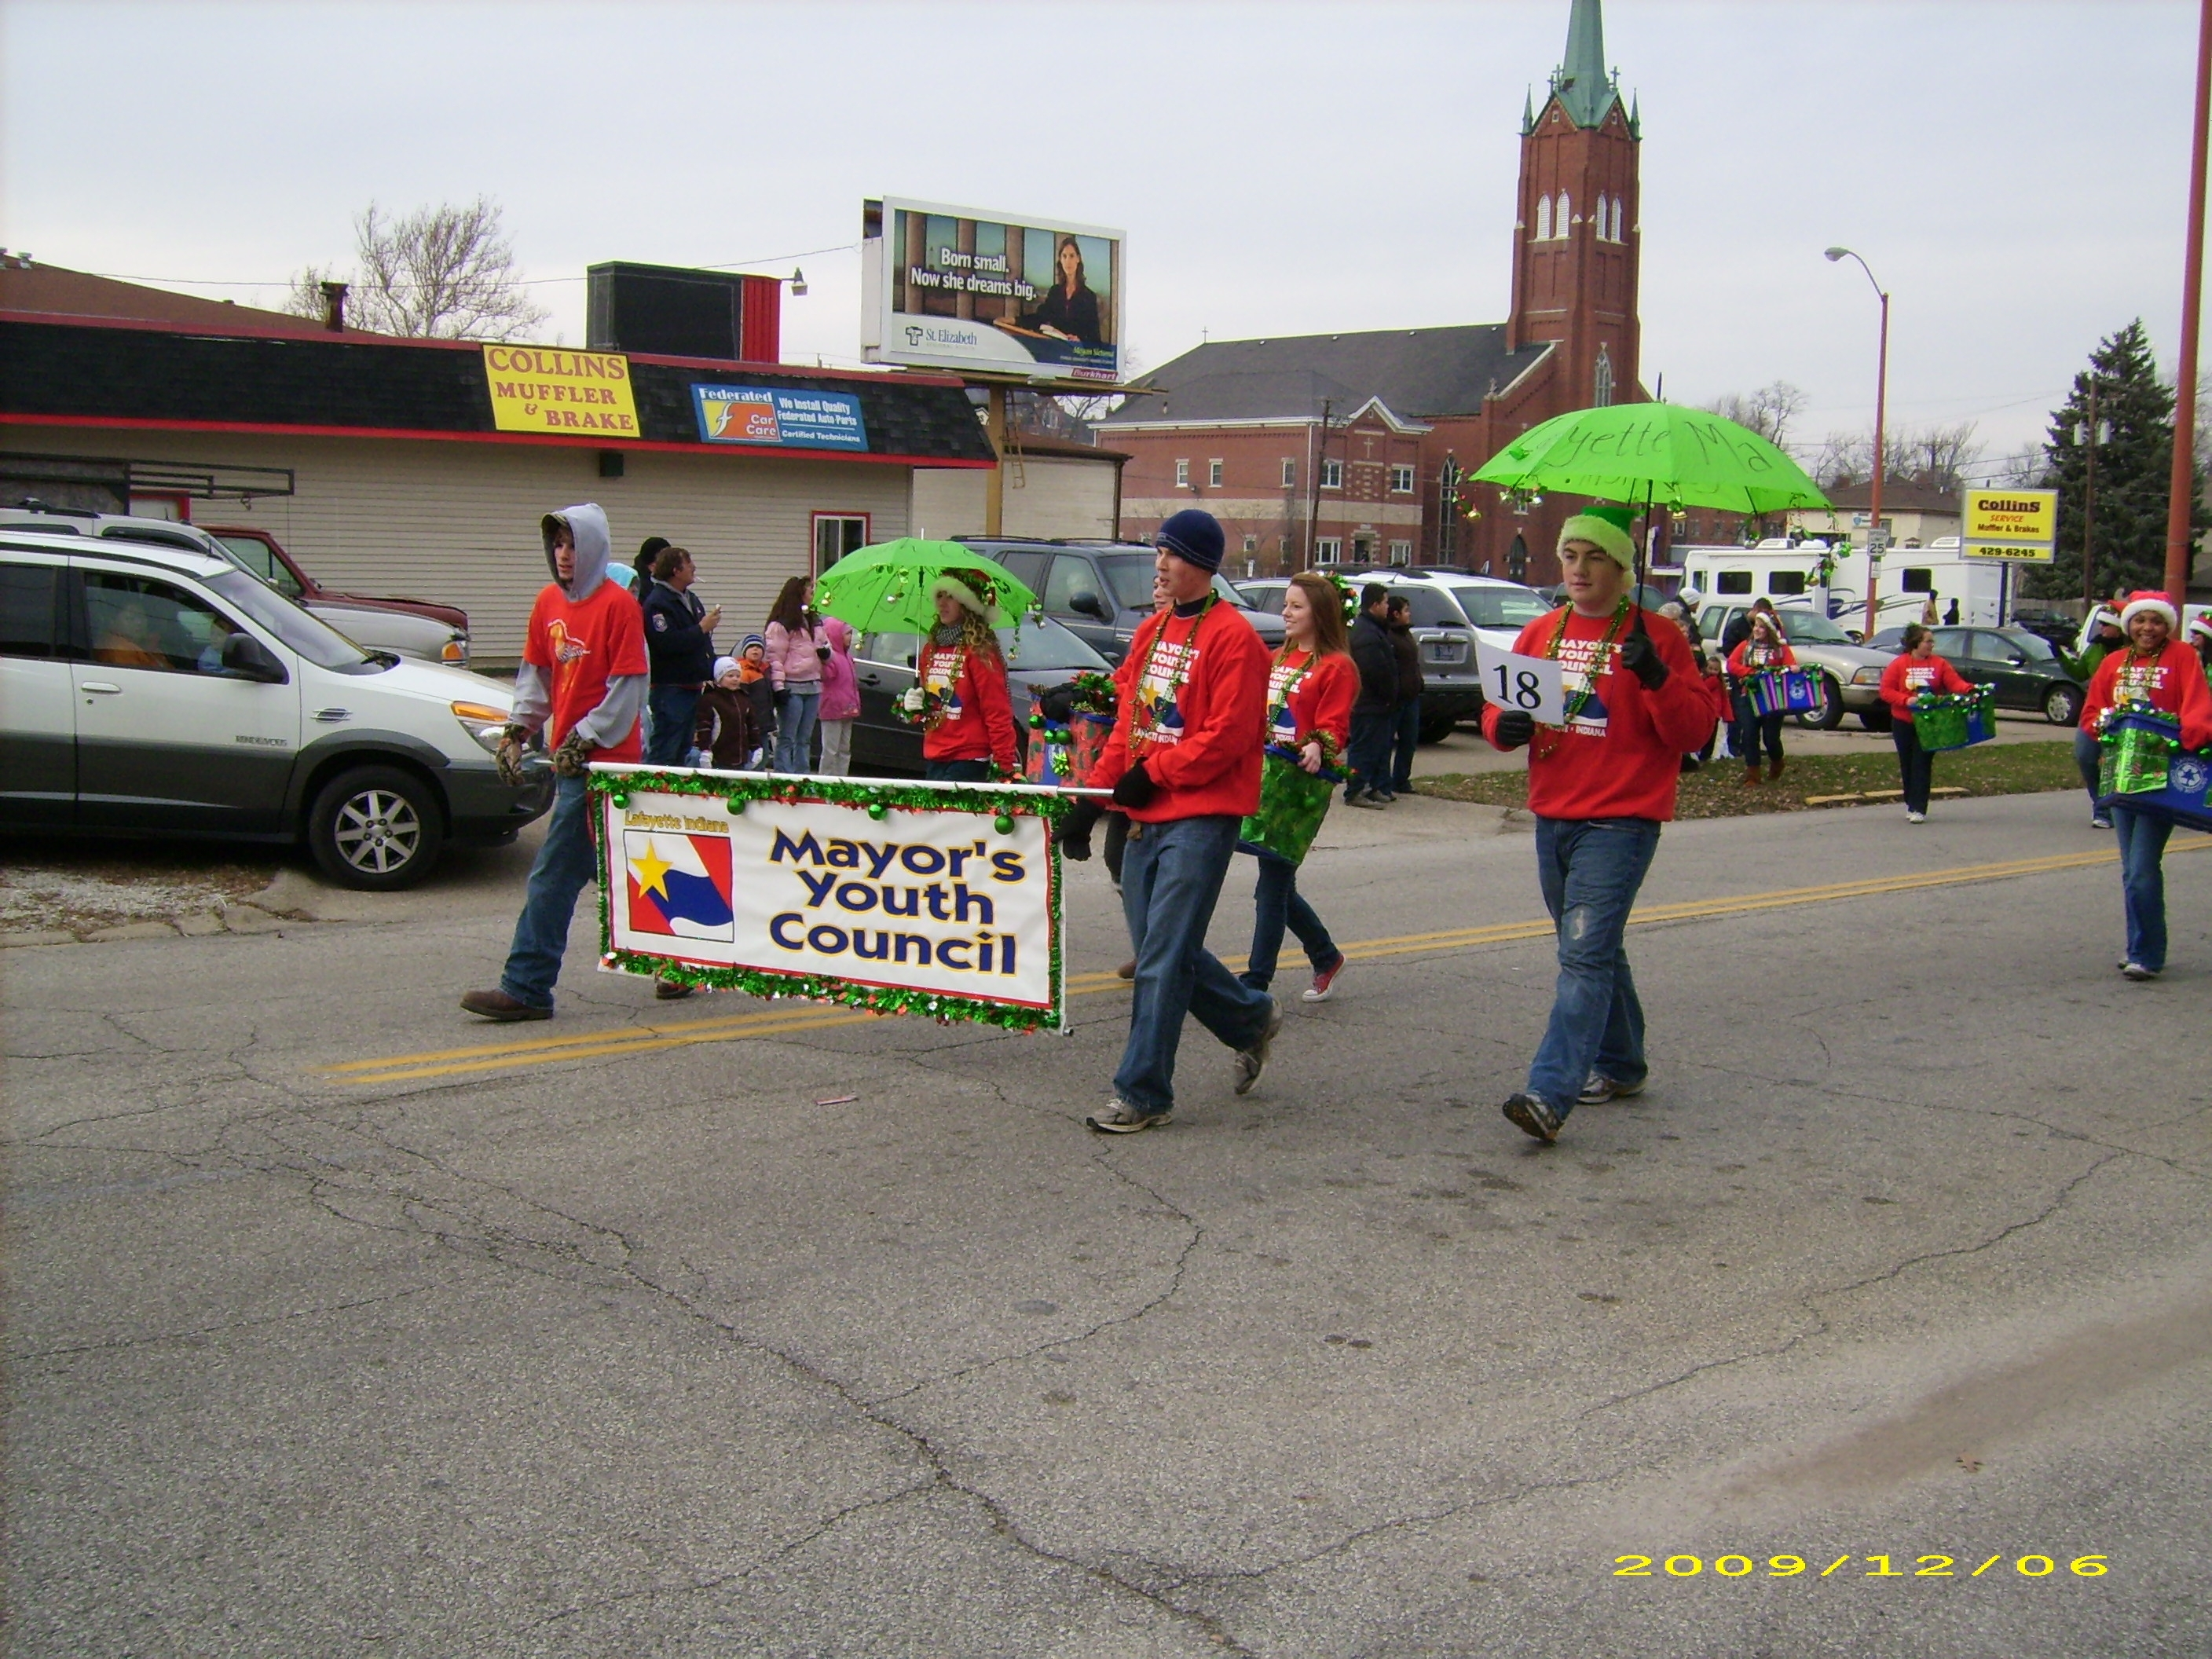 A group of teens in red shirts walking in a parade holding a sign